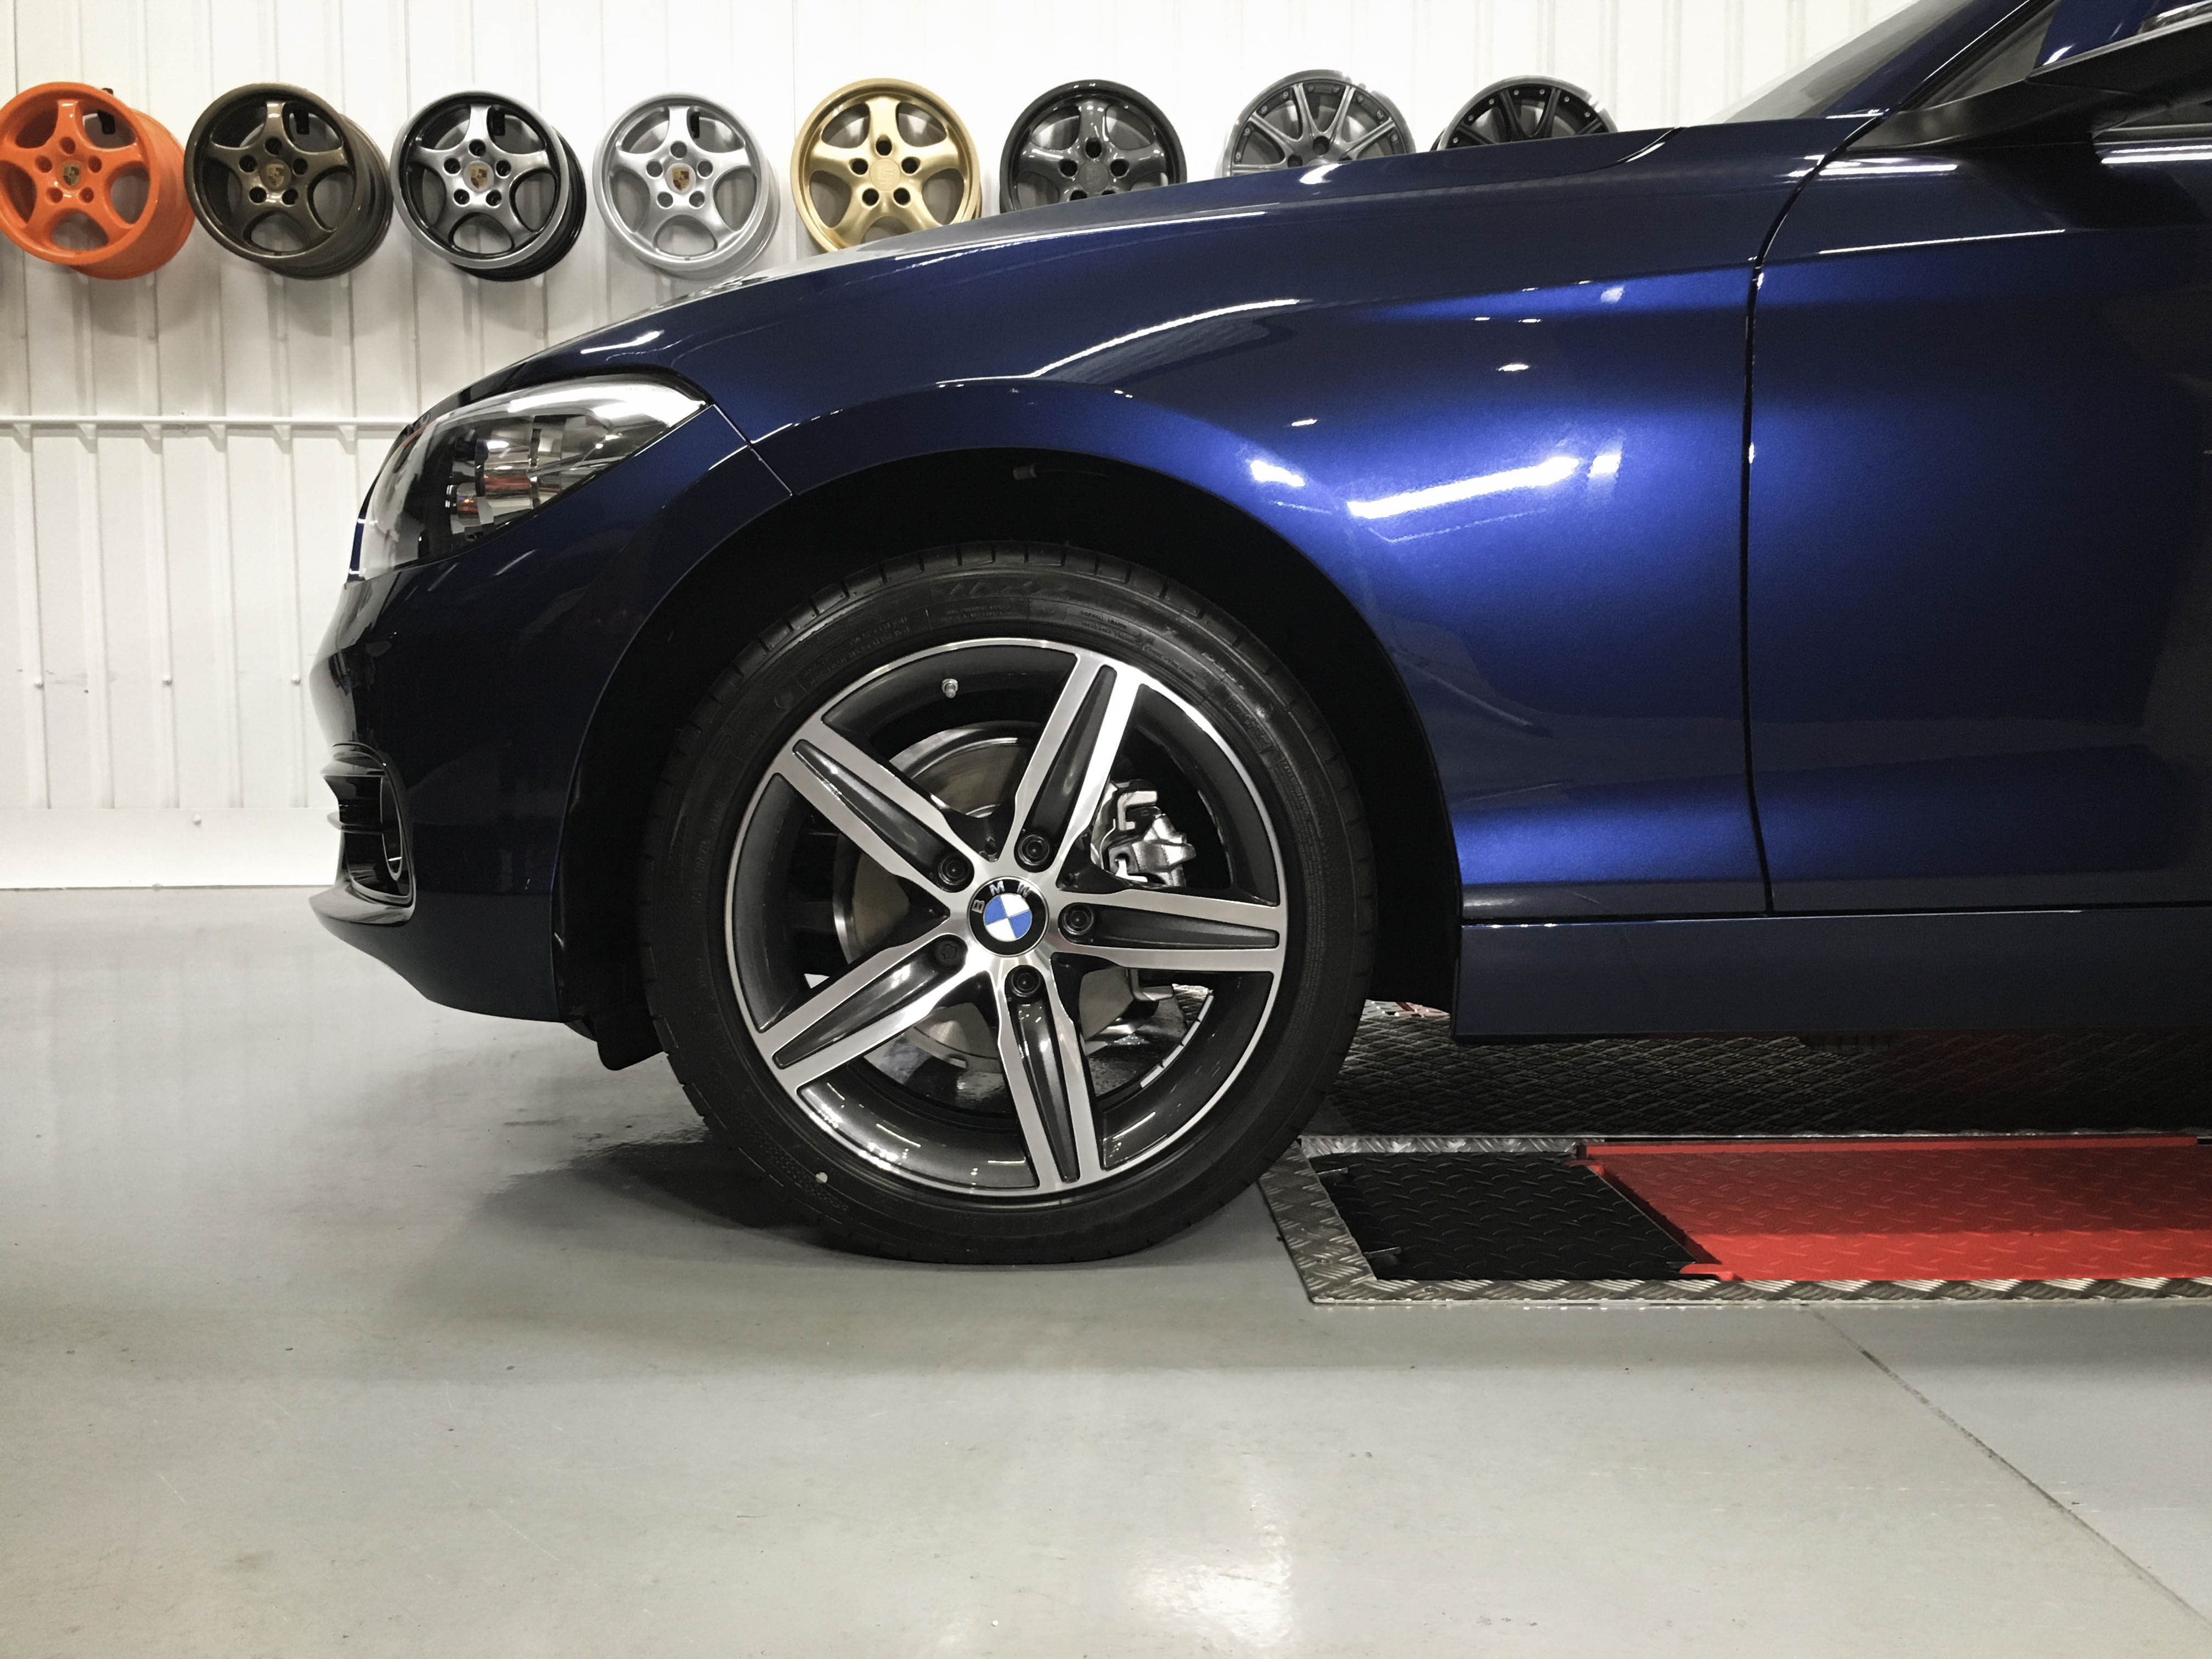 BMW-1series-wheel